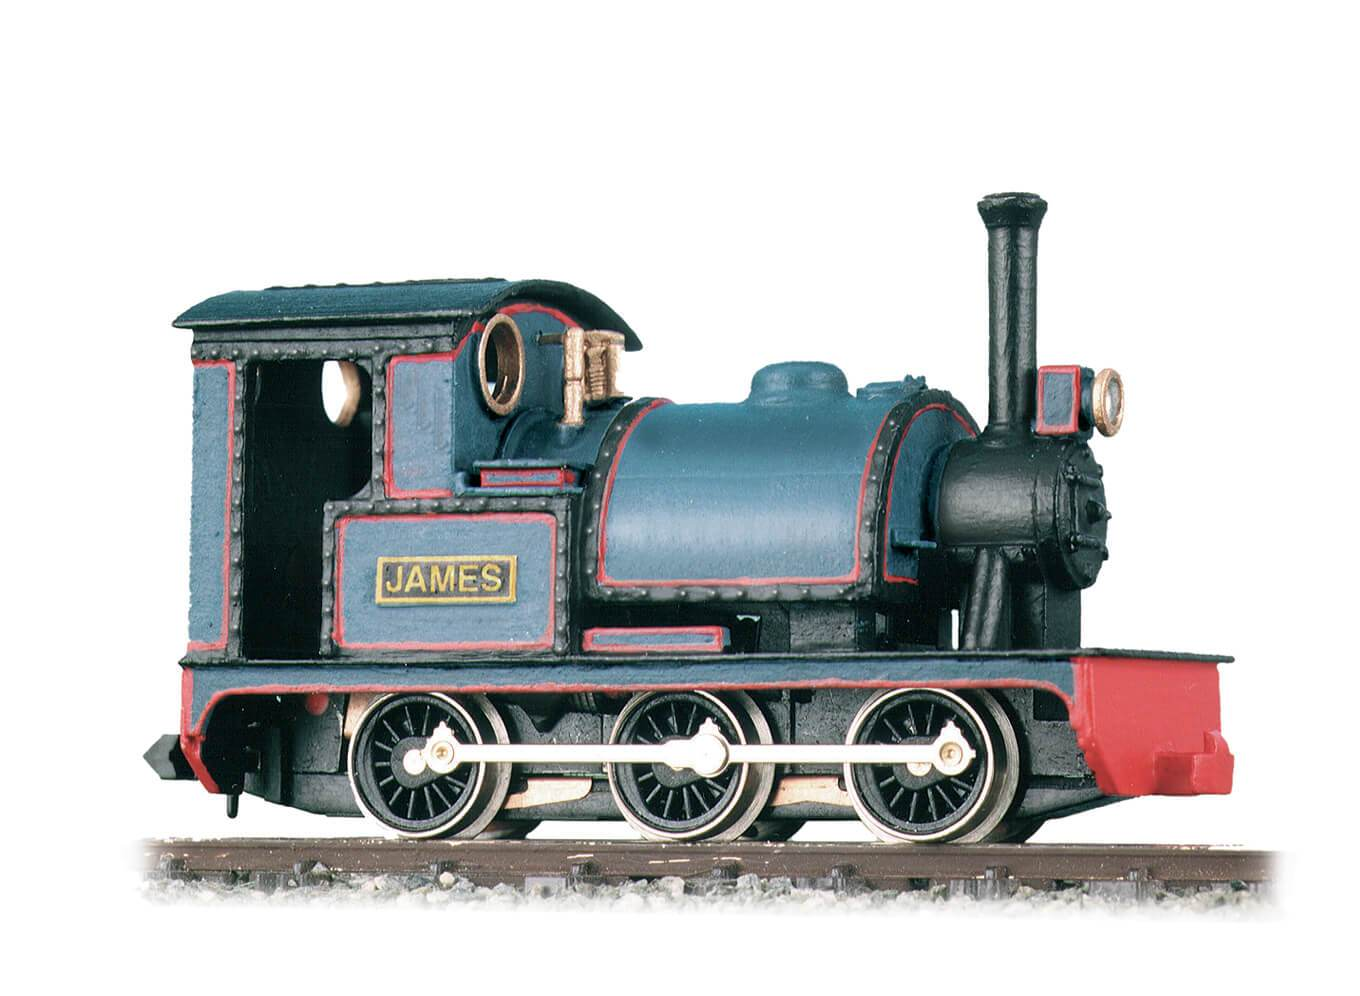 GL-6 Peco OO9 Gauge 0-6-0 Tram Locomotive Kit Chassis not included